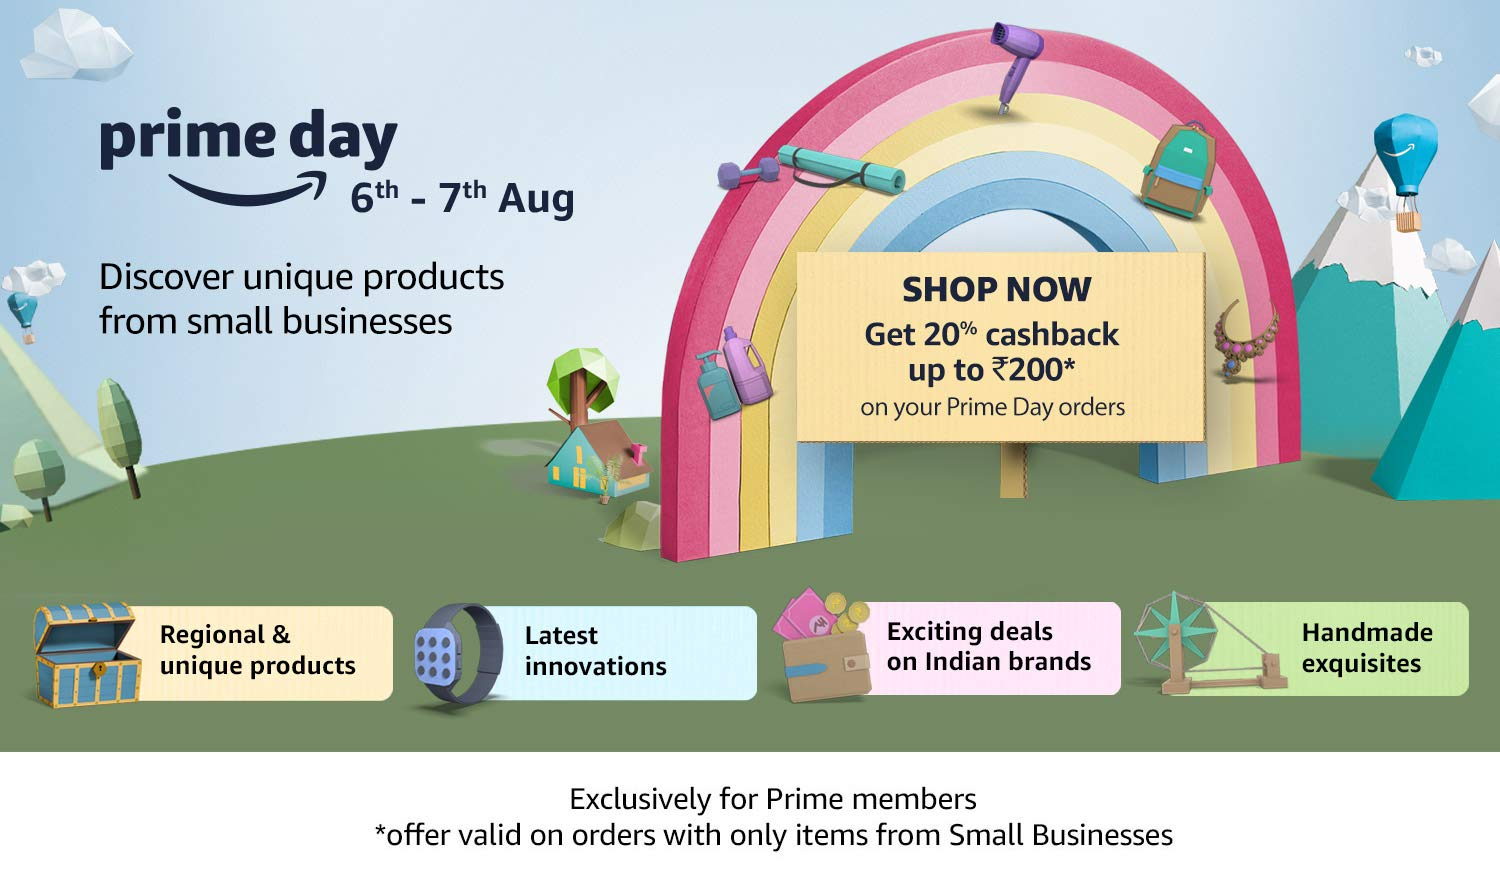 Prime day - Discover unique products from small businesses